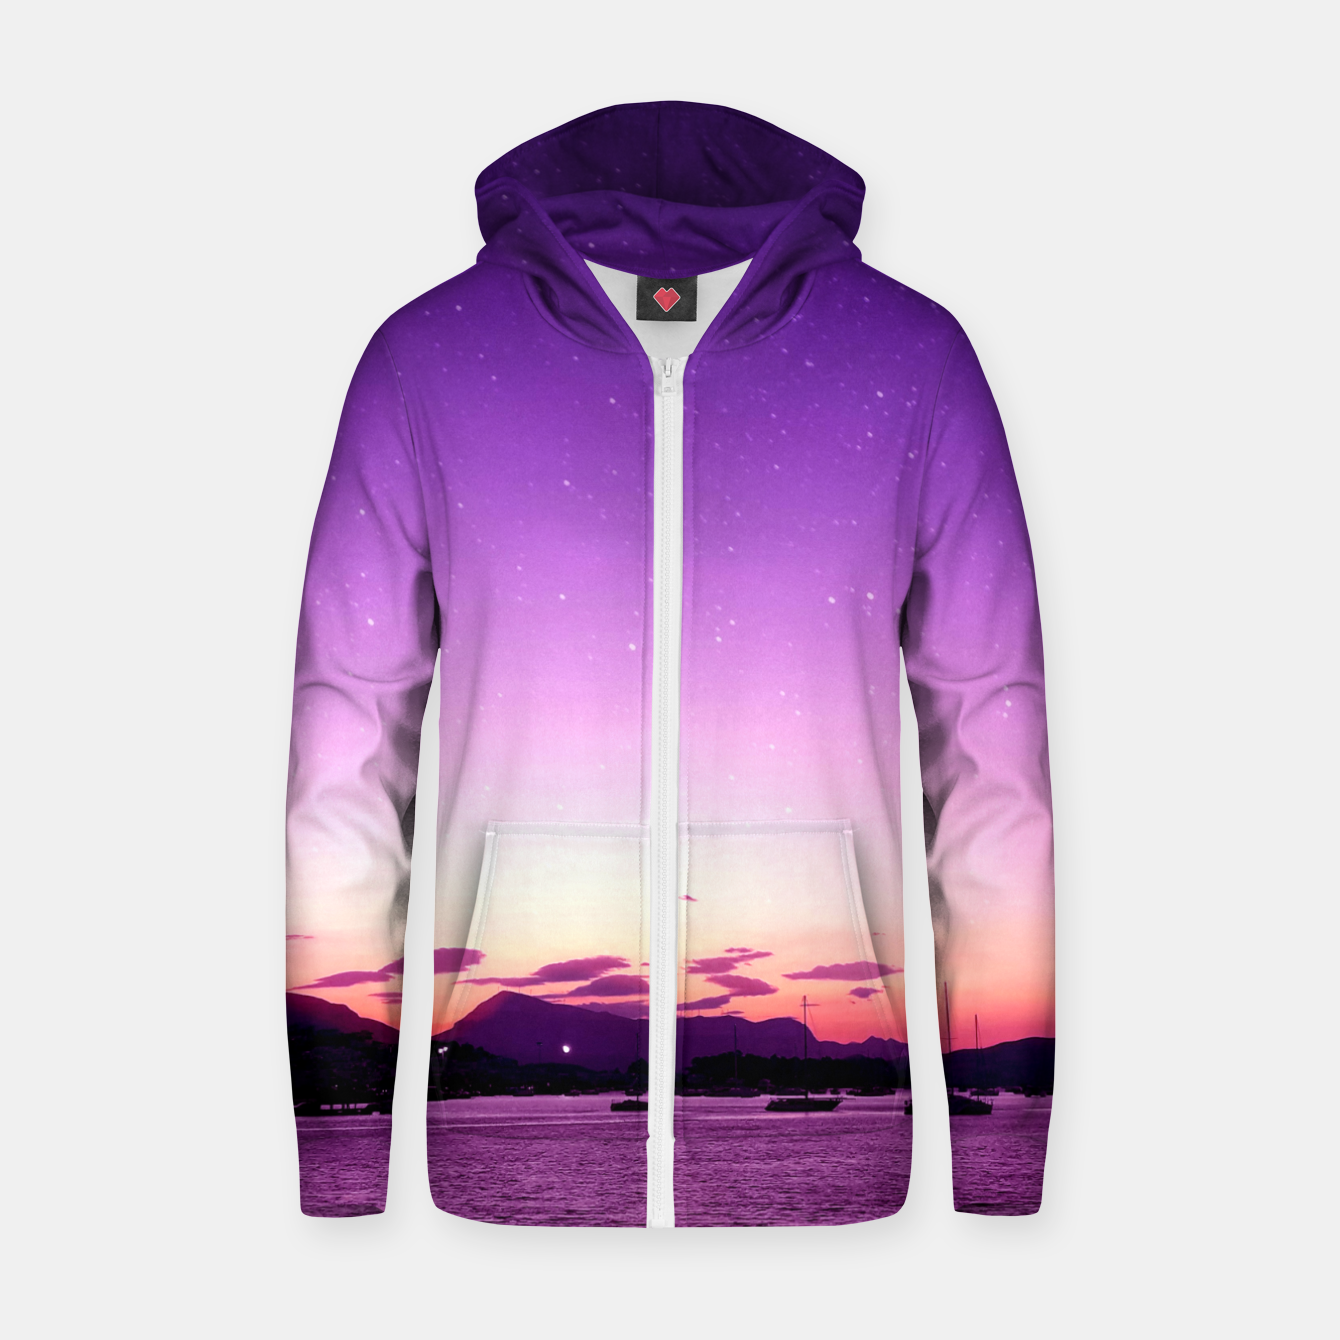 Zdjęcie Sunset in Island Poros Greece Zip up hoodie - Live Heroes